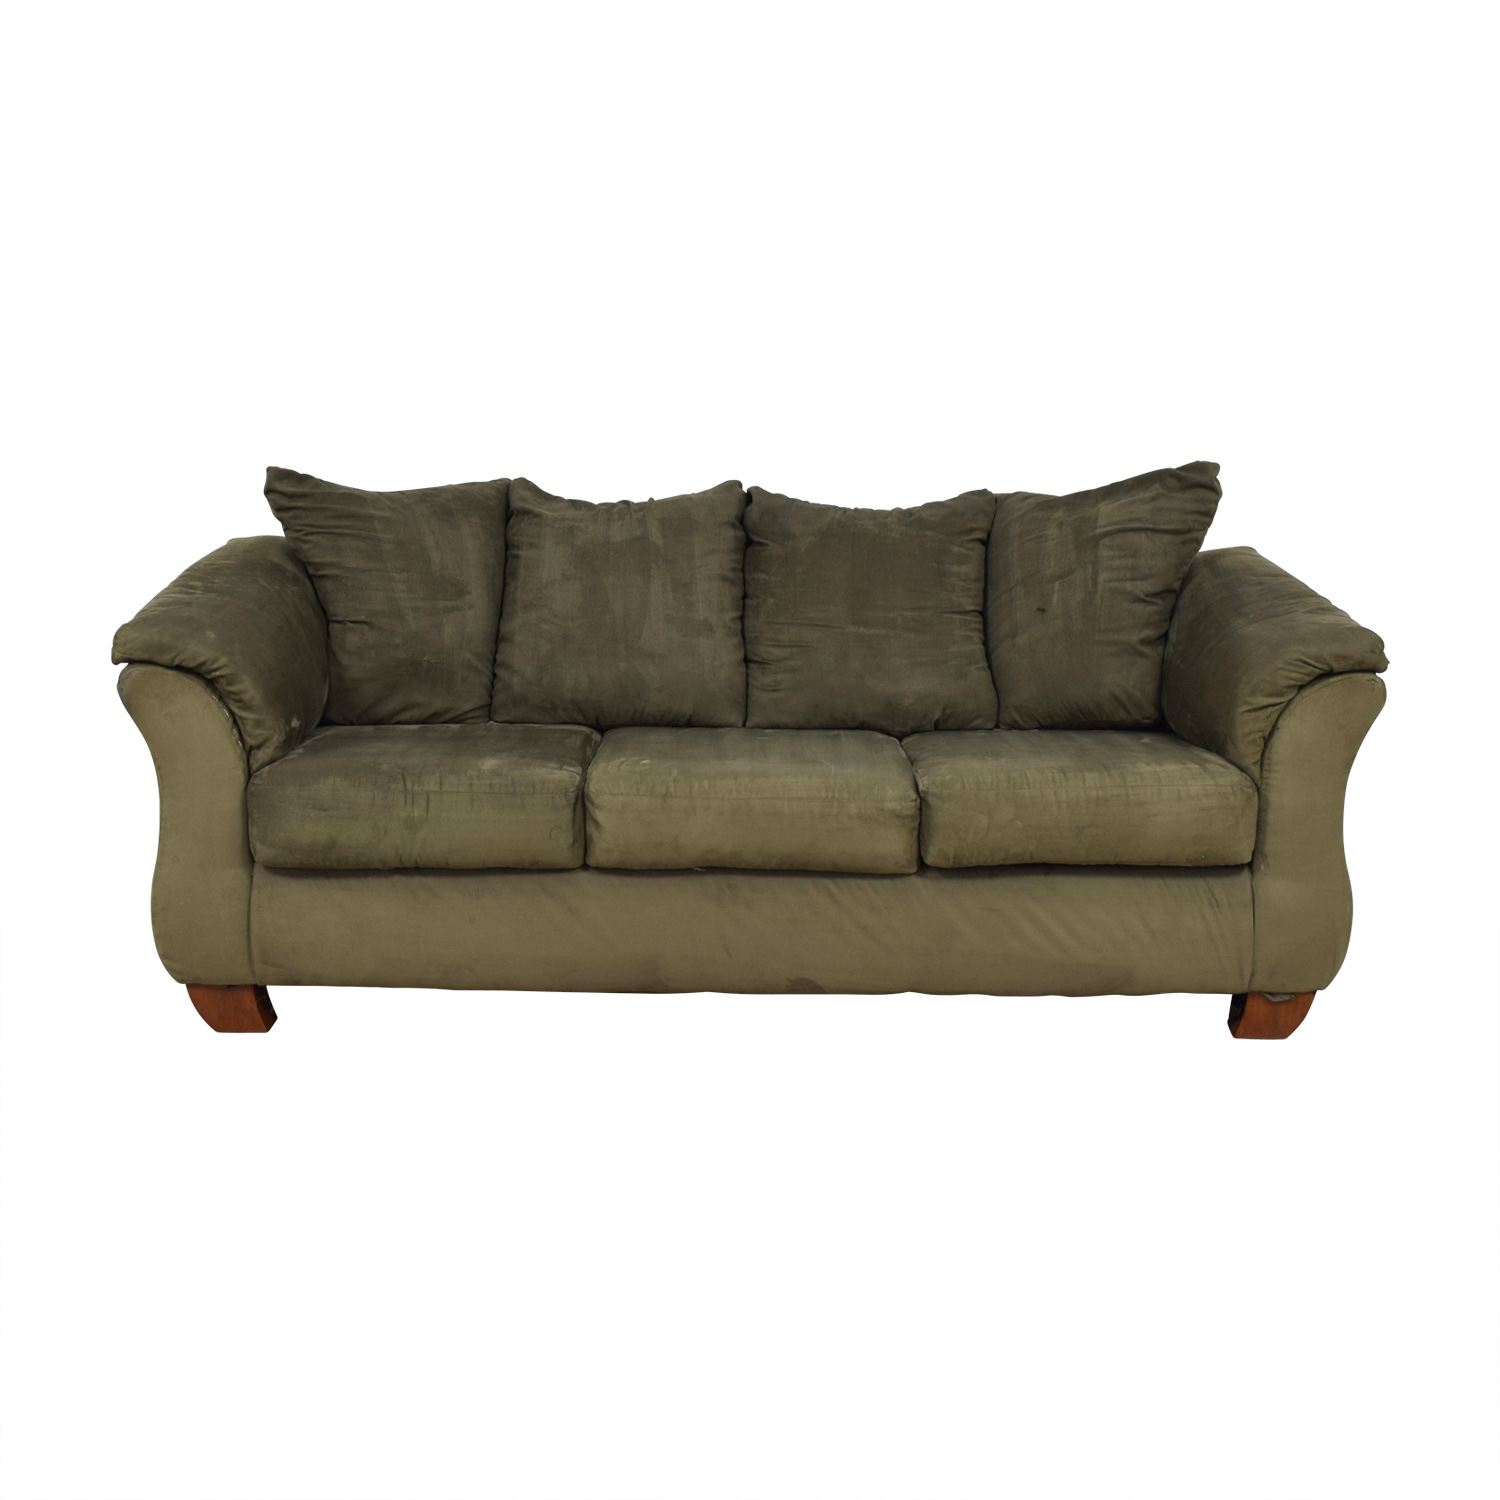 Ashley Furniture Forest Green Three Cushion Couch Clic Sofas